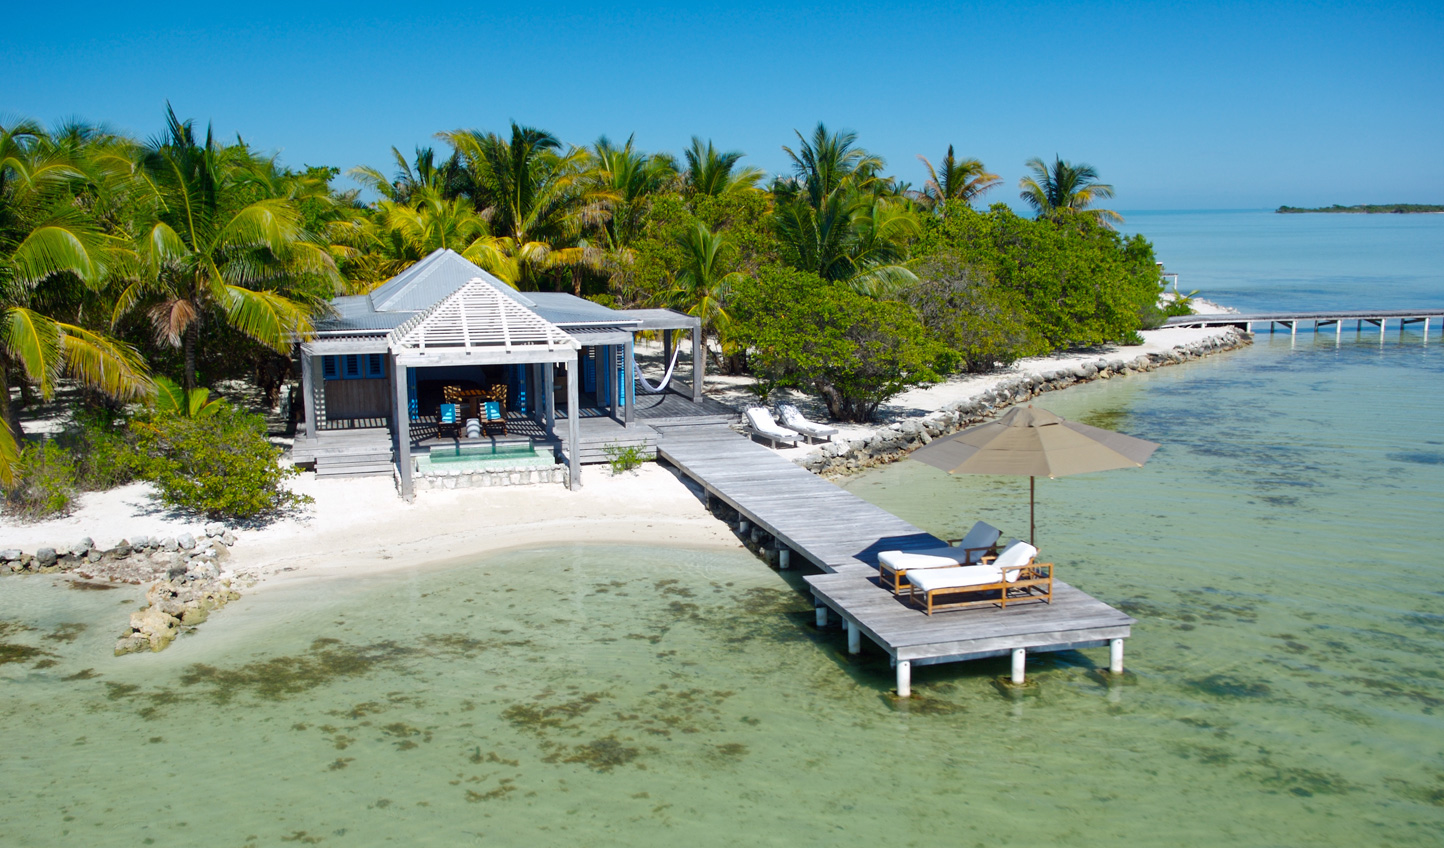 Hideaway for a week or more at Cayo Espanto